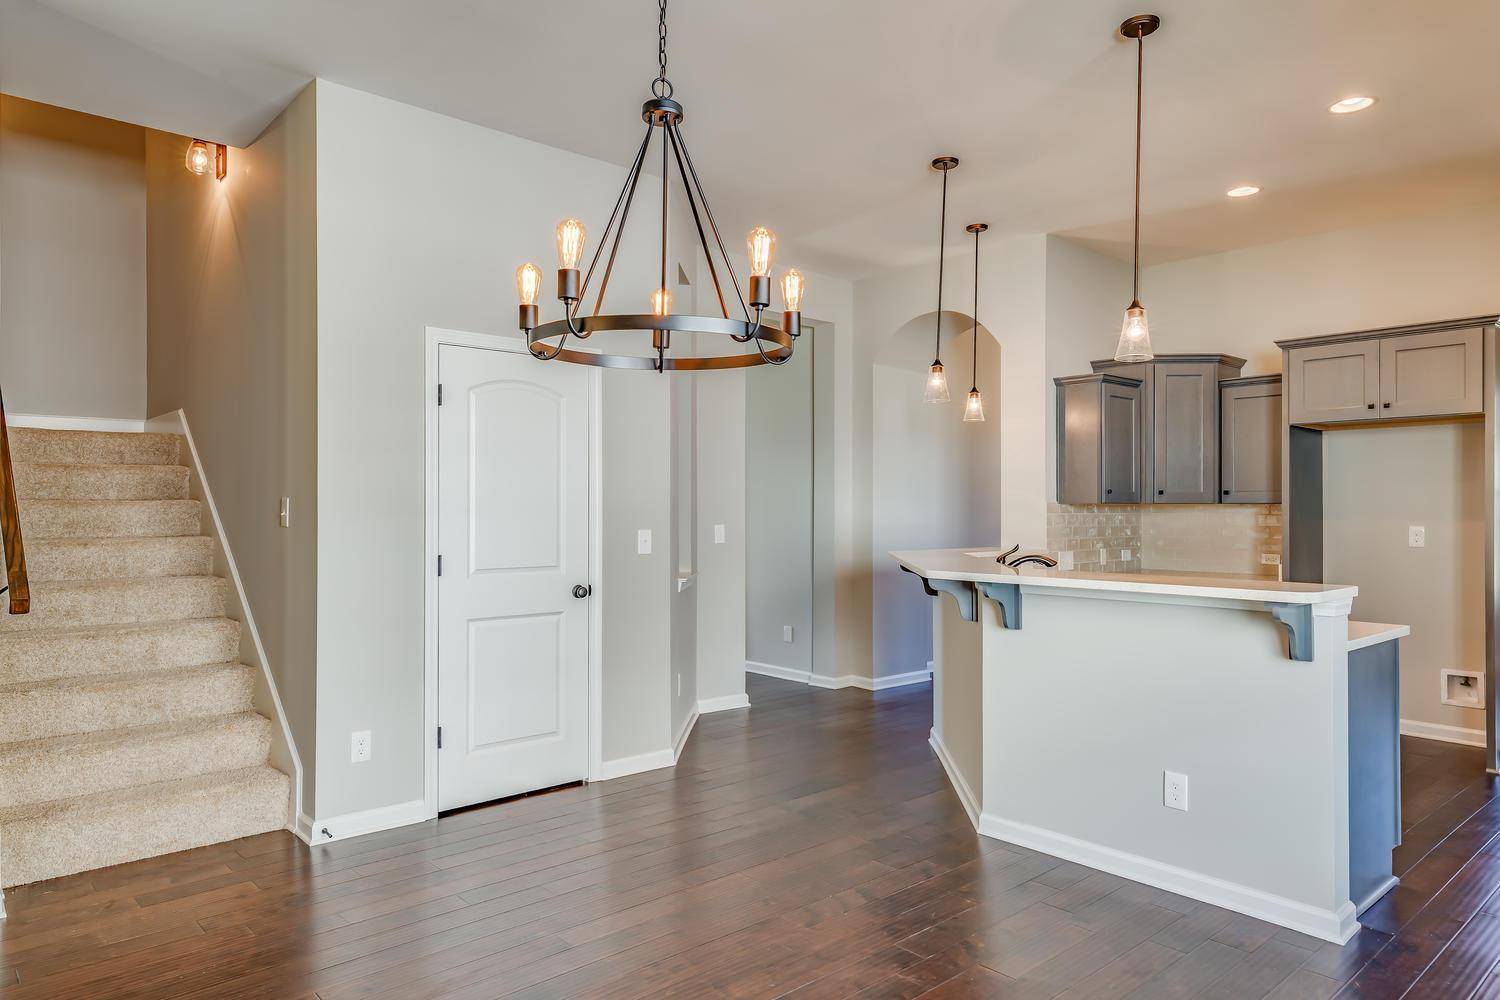 Kitchen featured in the Cottonwood  By Lowder New Homes in Montgomery, AL